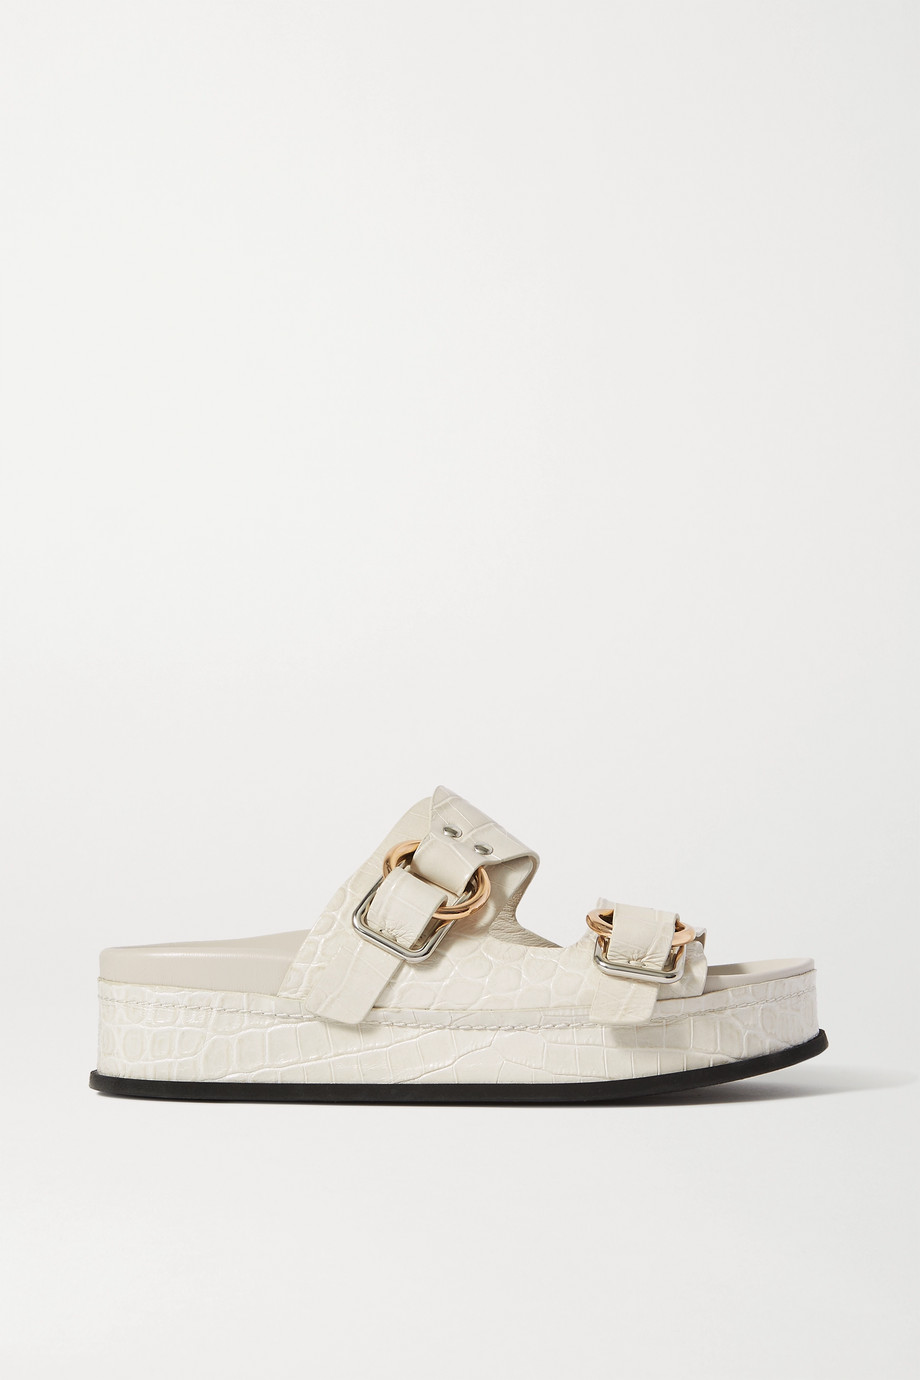 3.1 Phillip Lim + Space for Giants Freida croc-effect leather platform sandals